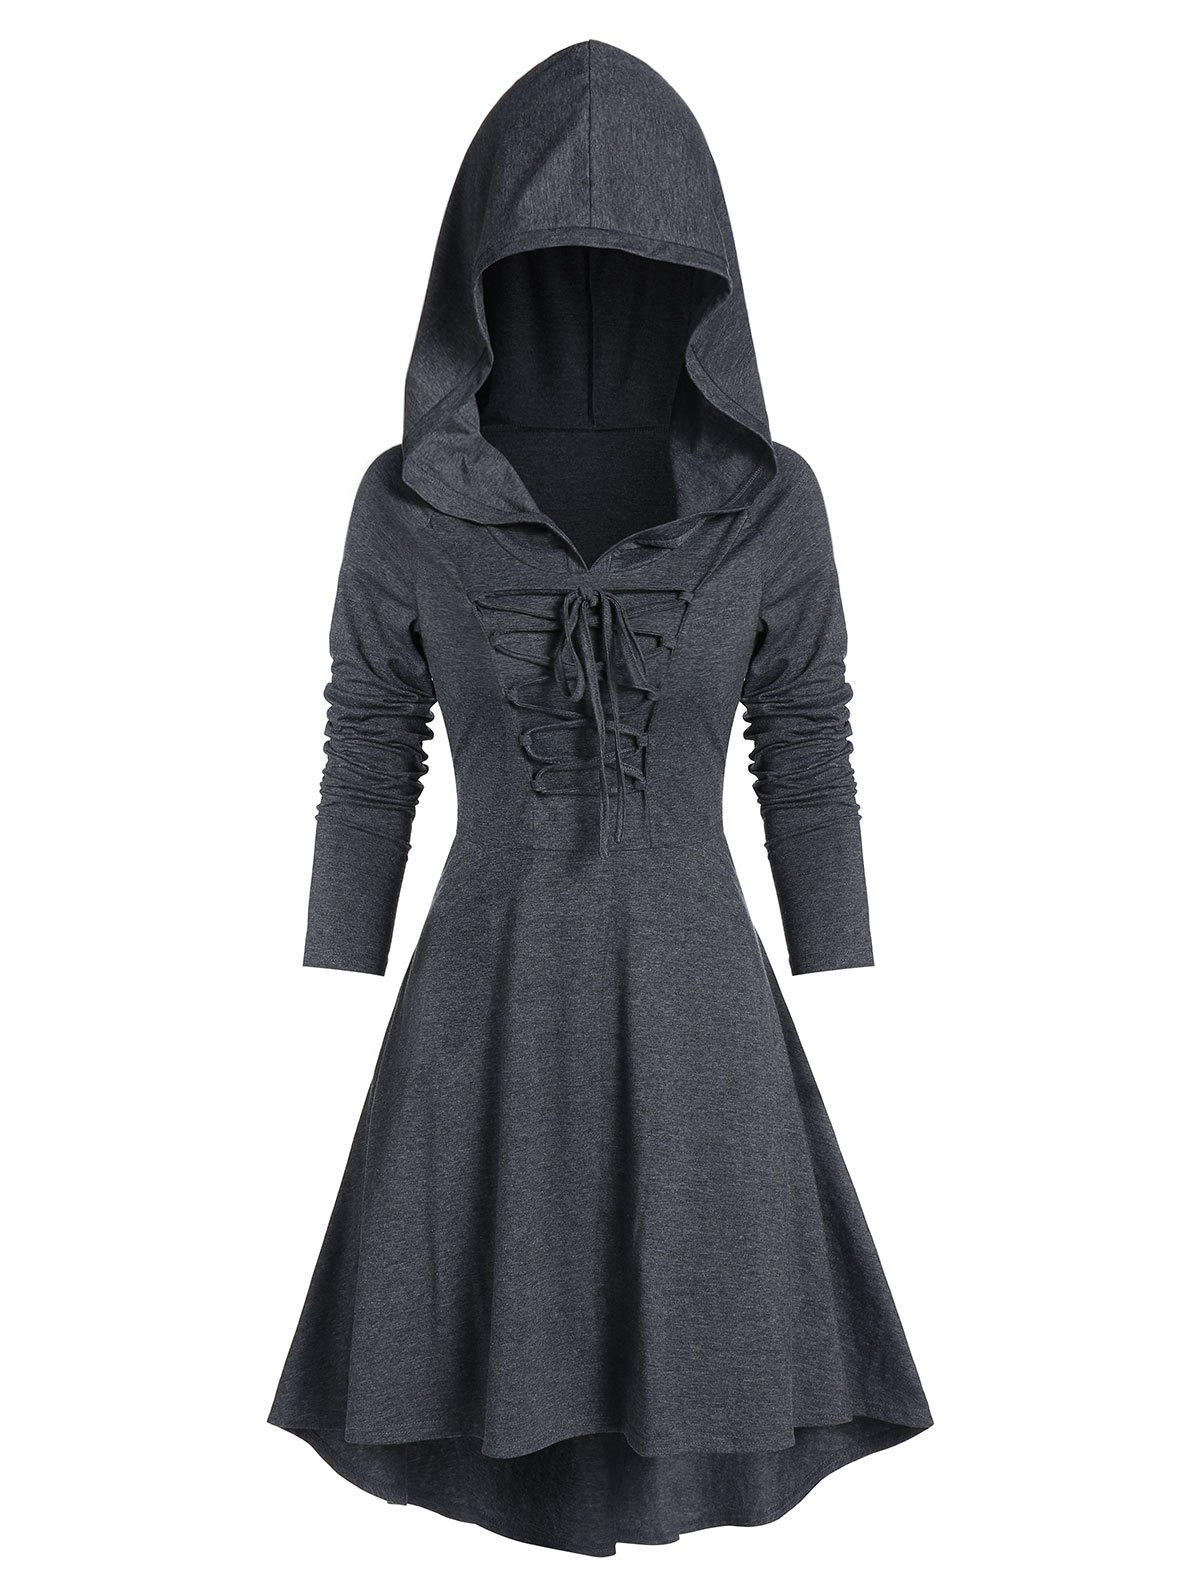 Lace-up High Low Hooded Heathered Gothic Dress